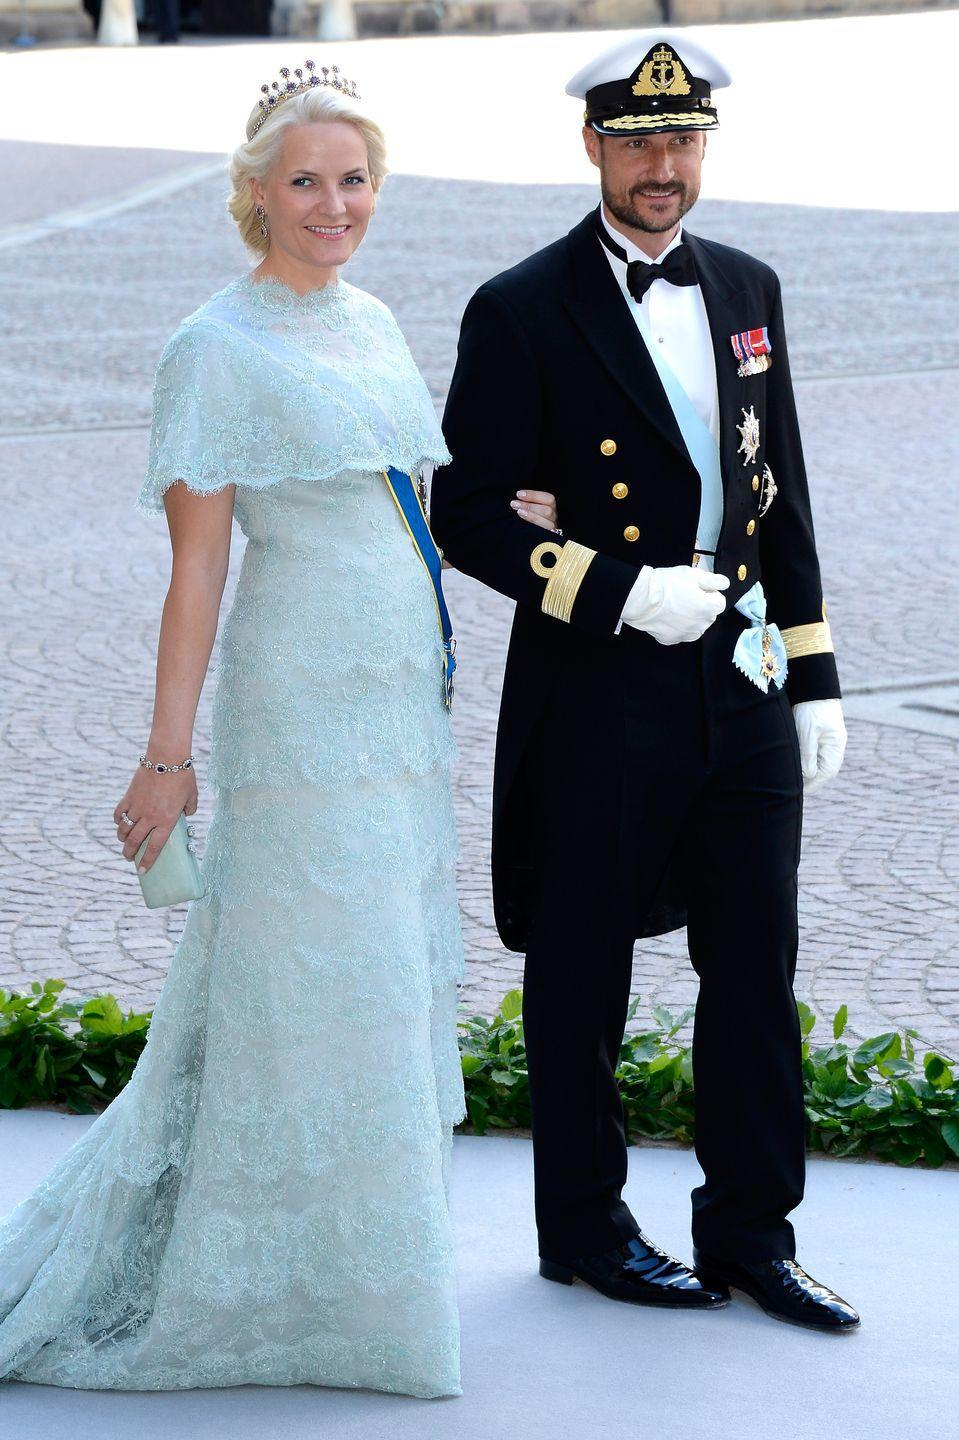 """<p>Høiby was a commoner and single mother who met Crown Prince Haakon of Norway in the late 1990s at the <span class=""""redactor-unlink"""">Quart Festival</span>, Norway's largest music festival. (Yes, apparently even royals love music festivals!) She became Princess Mette-Marit of Norway when the couple wed in 2001. </p>"""